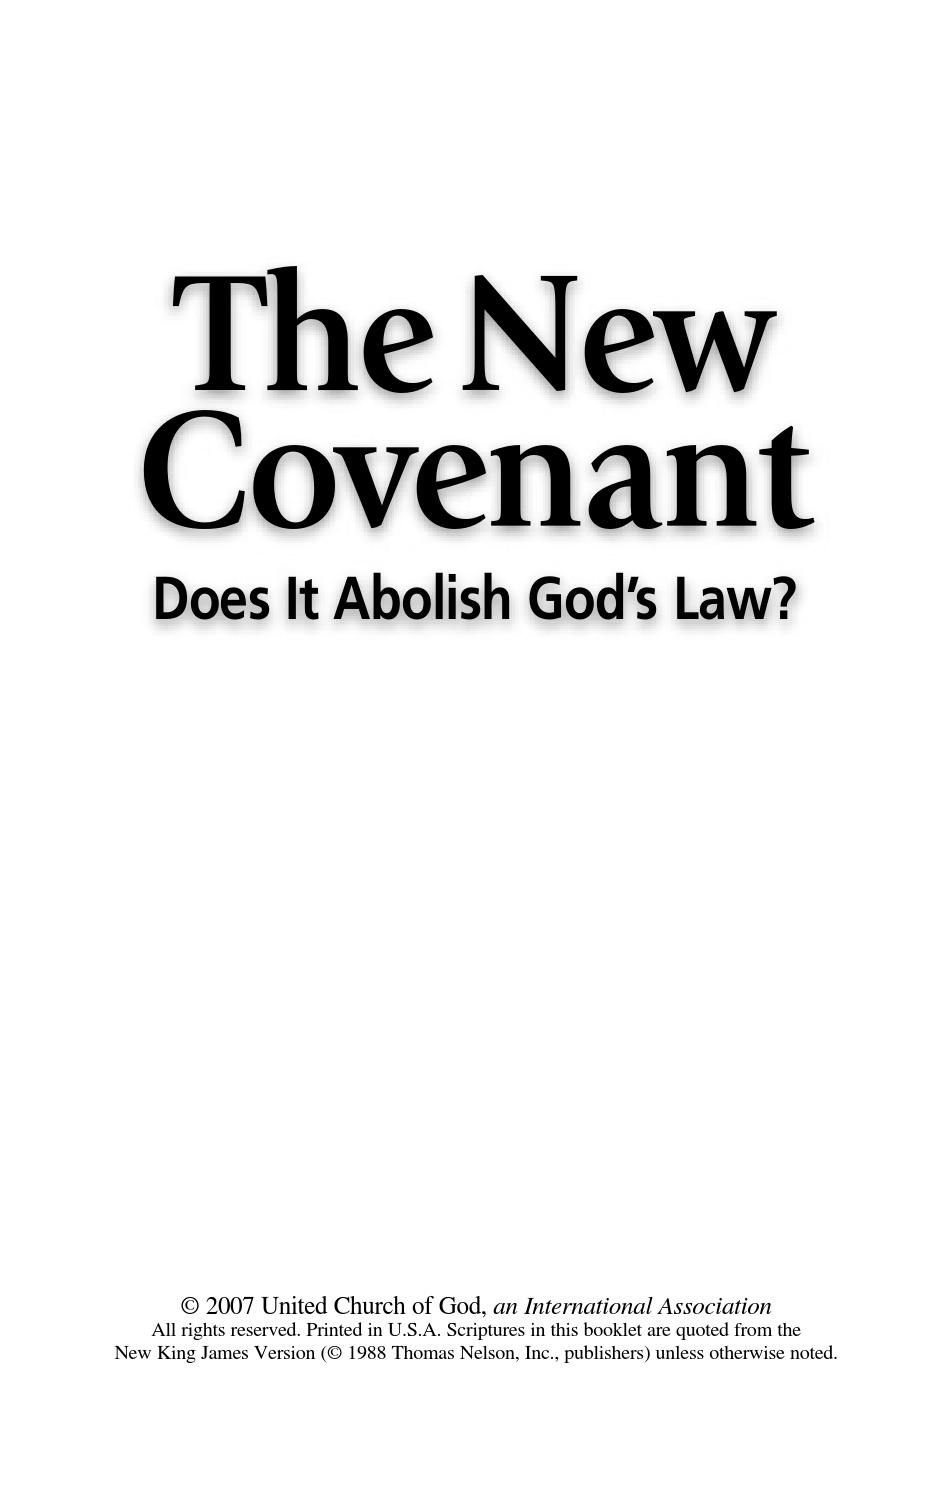 Bible Study Aid The New Covenant Does It Abolish God's